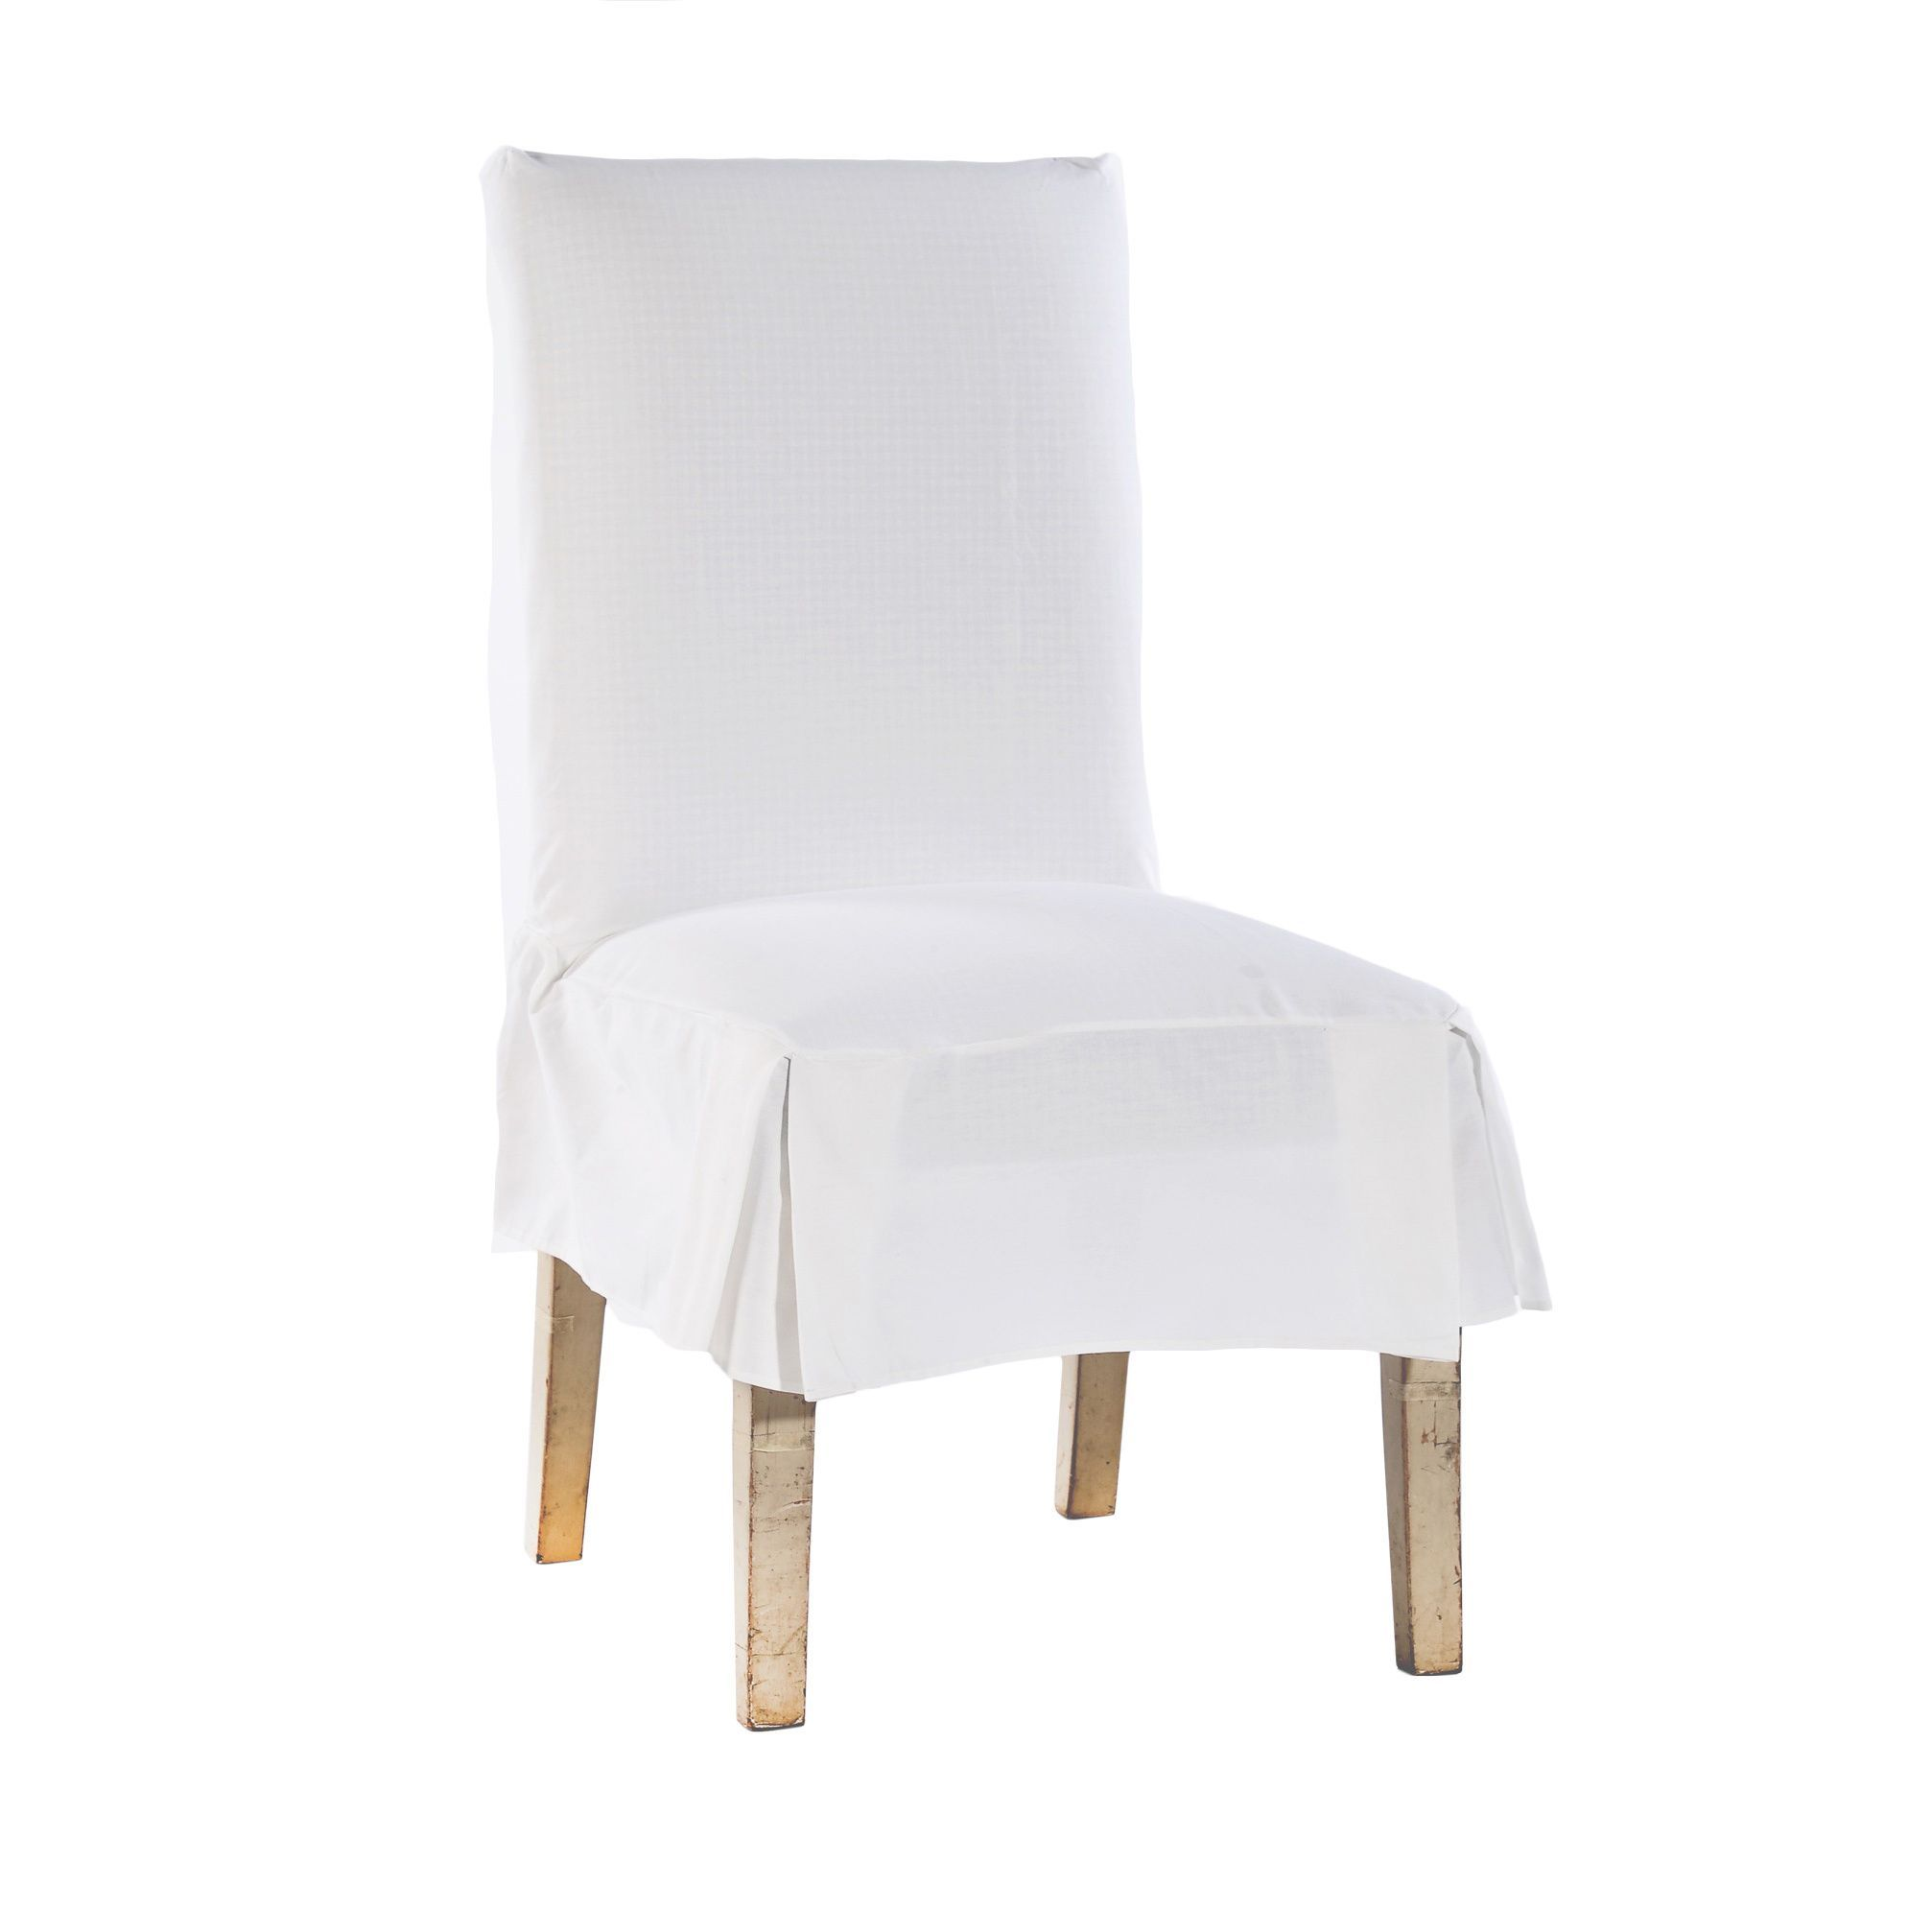 Miraculous Classic Cotton Duck Dining Chair Slipcovers Set Of 2 Pabps2019 Chair Design Images Pabps2019Com